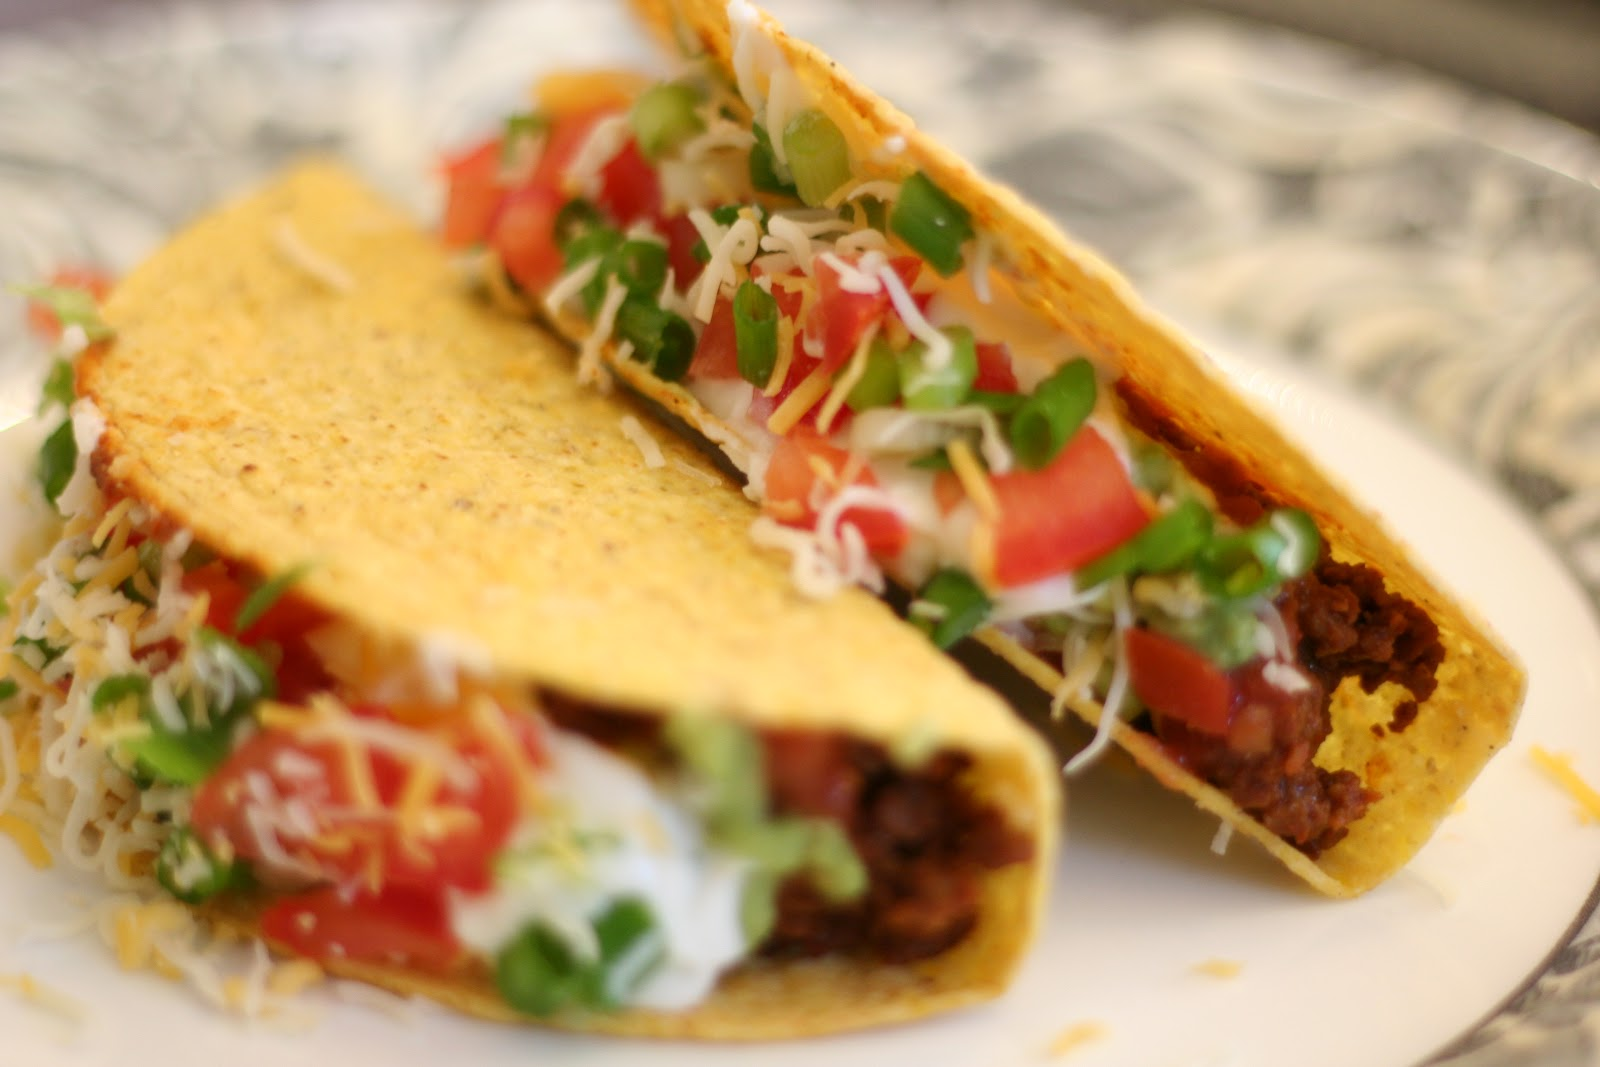 vegetarian tacos | Footnotes and Finds